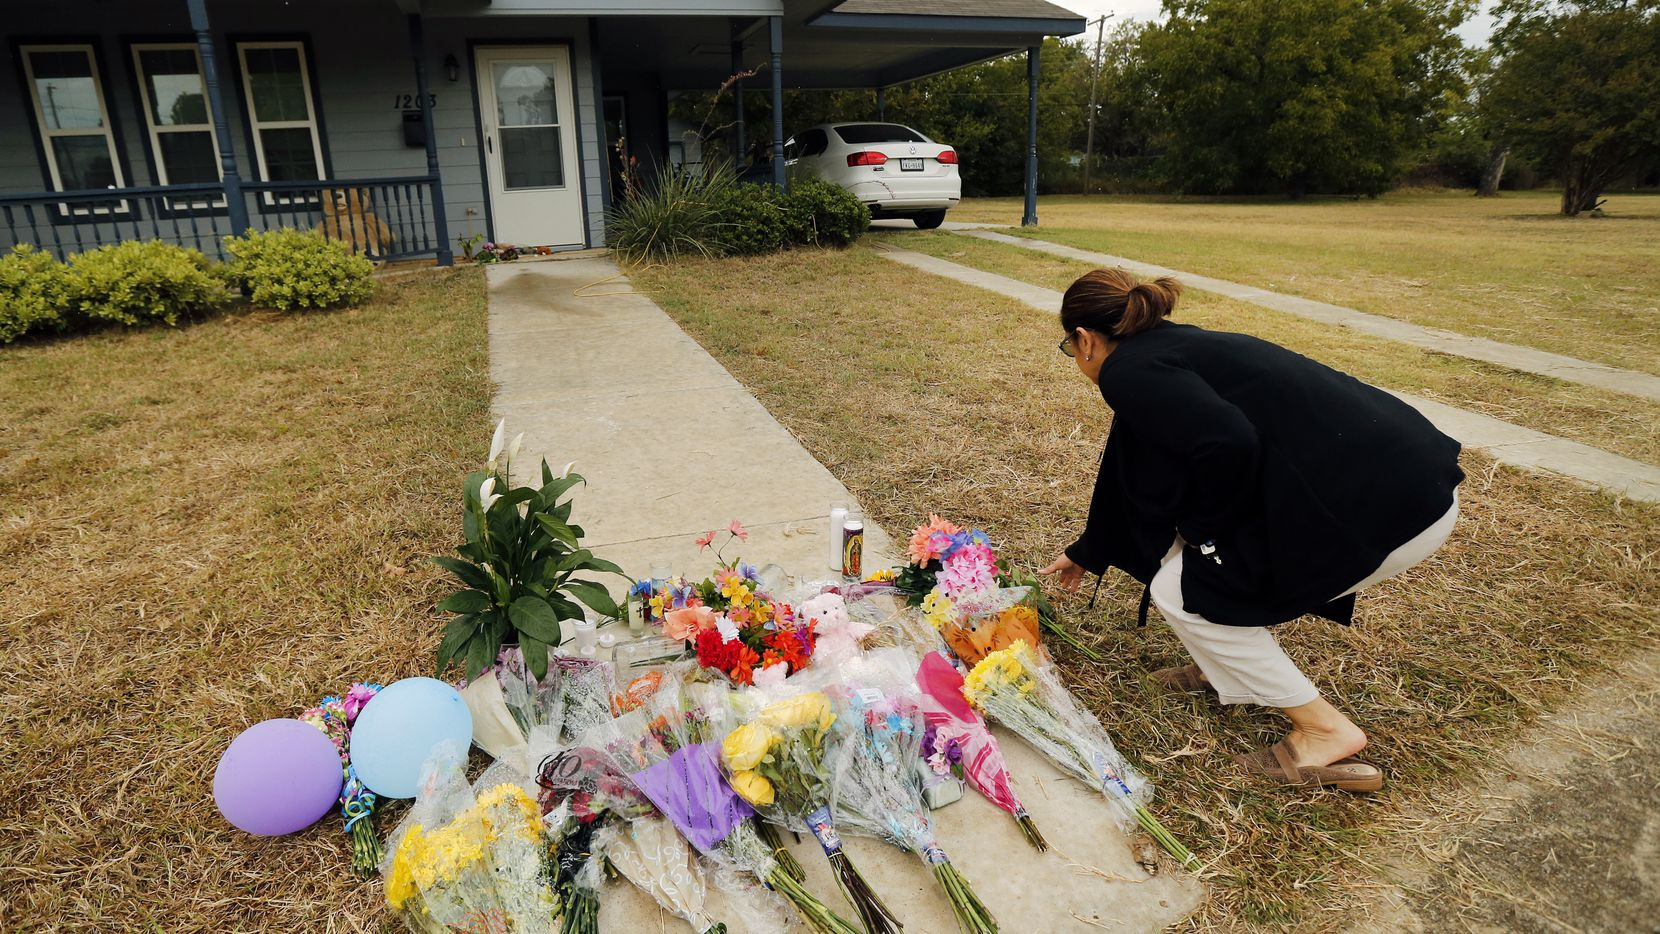 Anastasia Gonzalez of Burleson left flowers on the front sidewalk of Atatiana Jefferson's home on East Allen Ave in Fort Worth in late 2019.